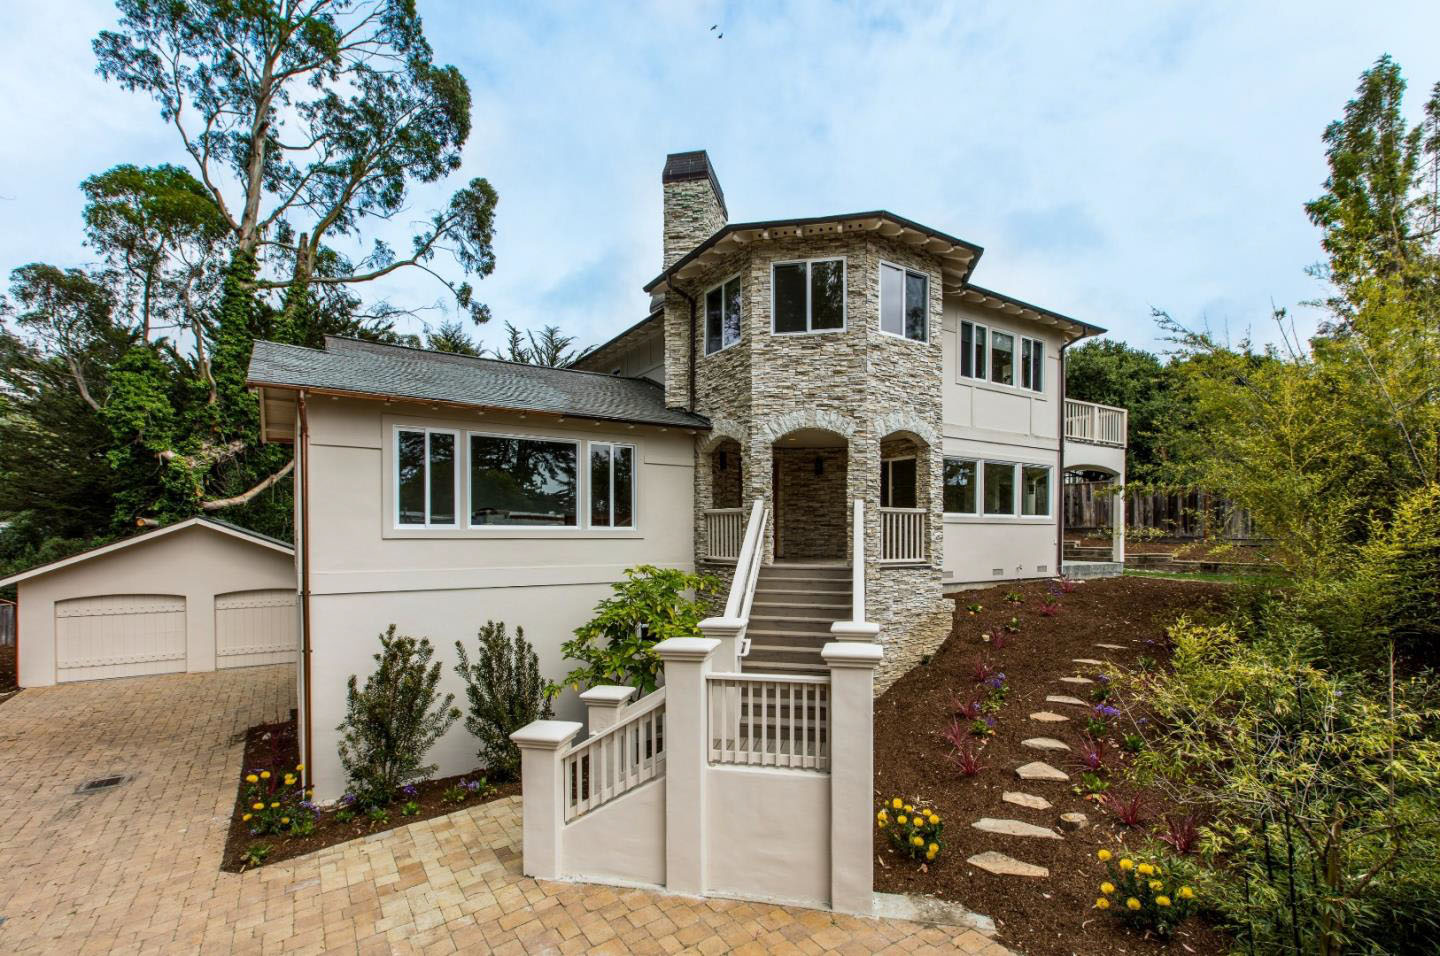 **SOLD 7150 Urbin Way, Aptos • $1,169,000  4 Bedroom, 3 Bathroom • 3,368 SQ. FT.